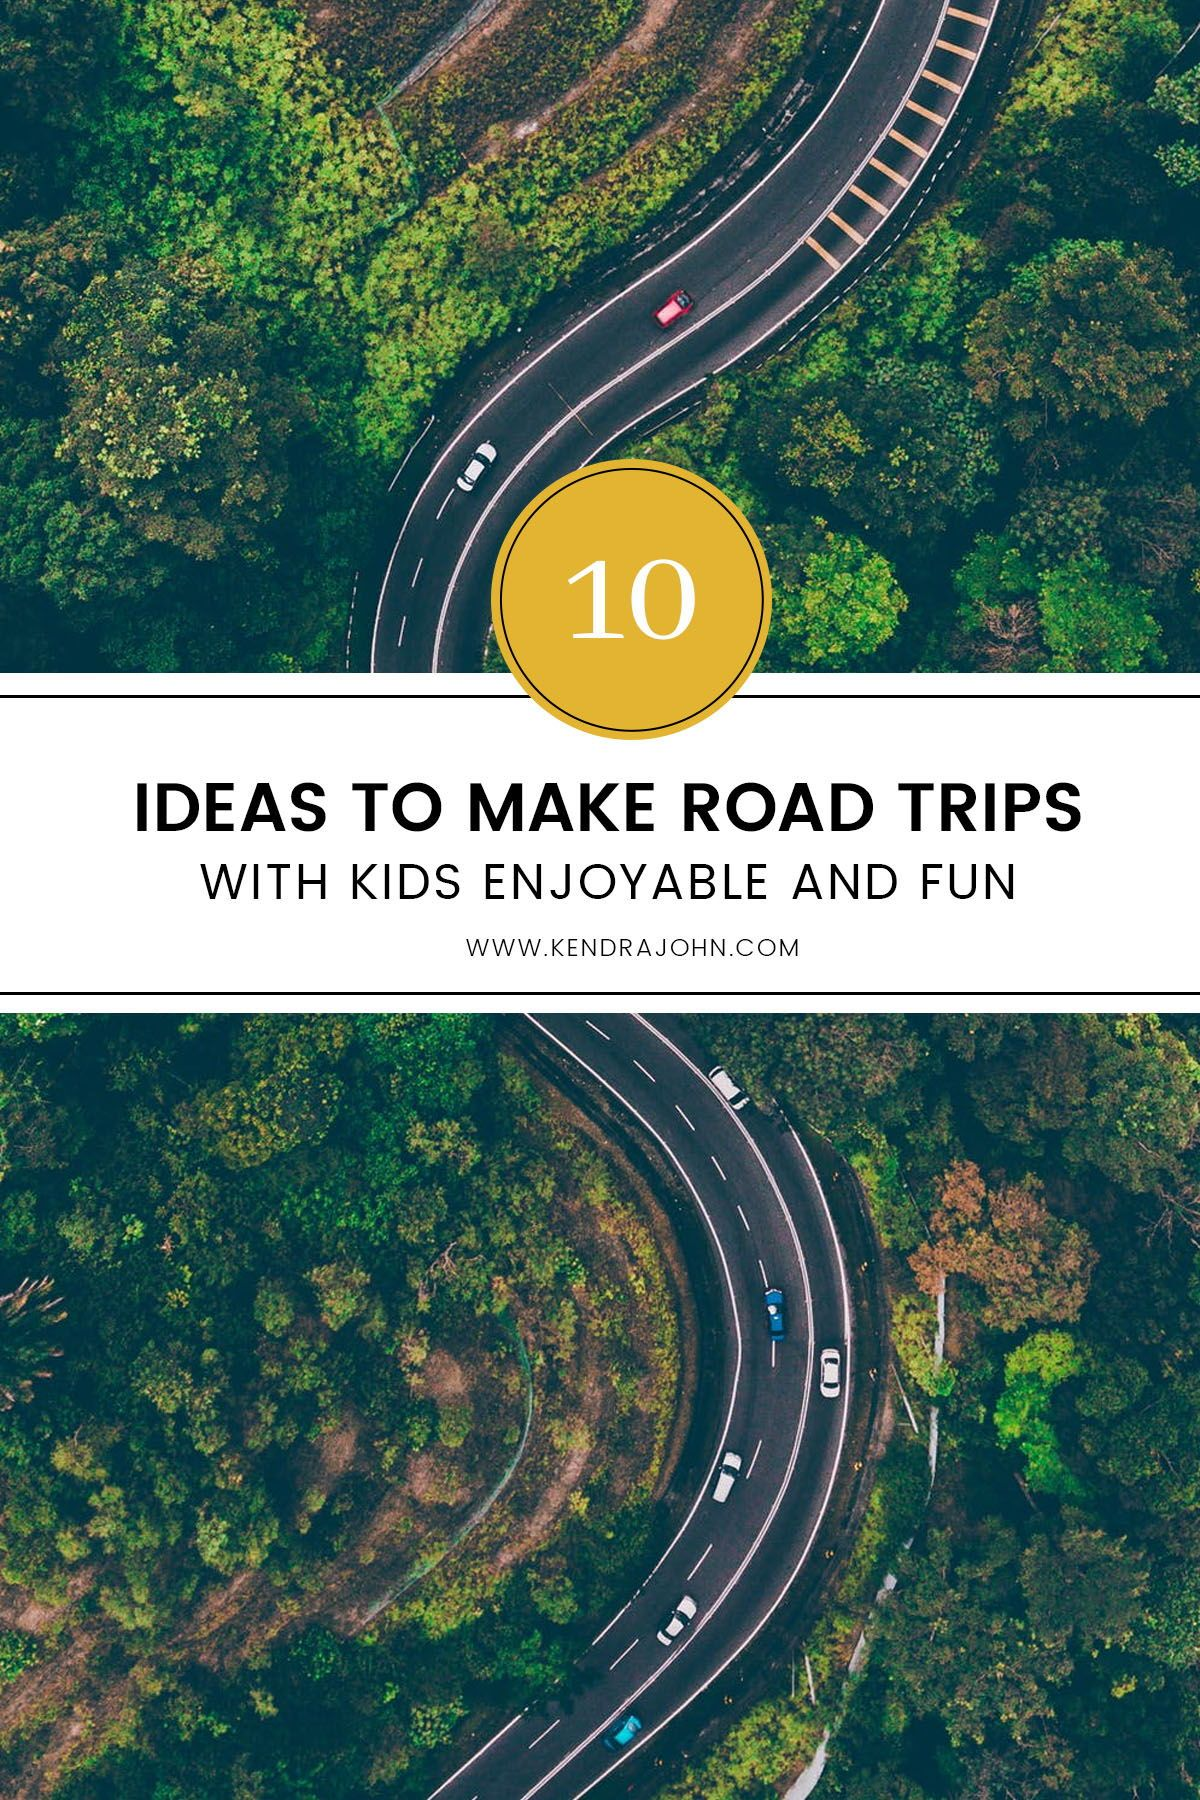 Ideas To Make Road Trips With Kids Fun And Enjoyable